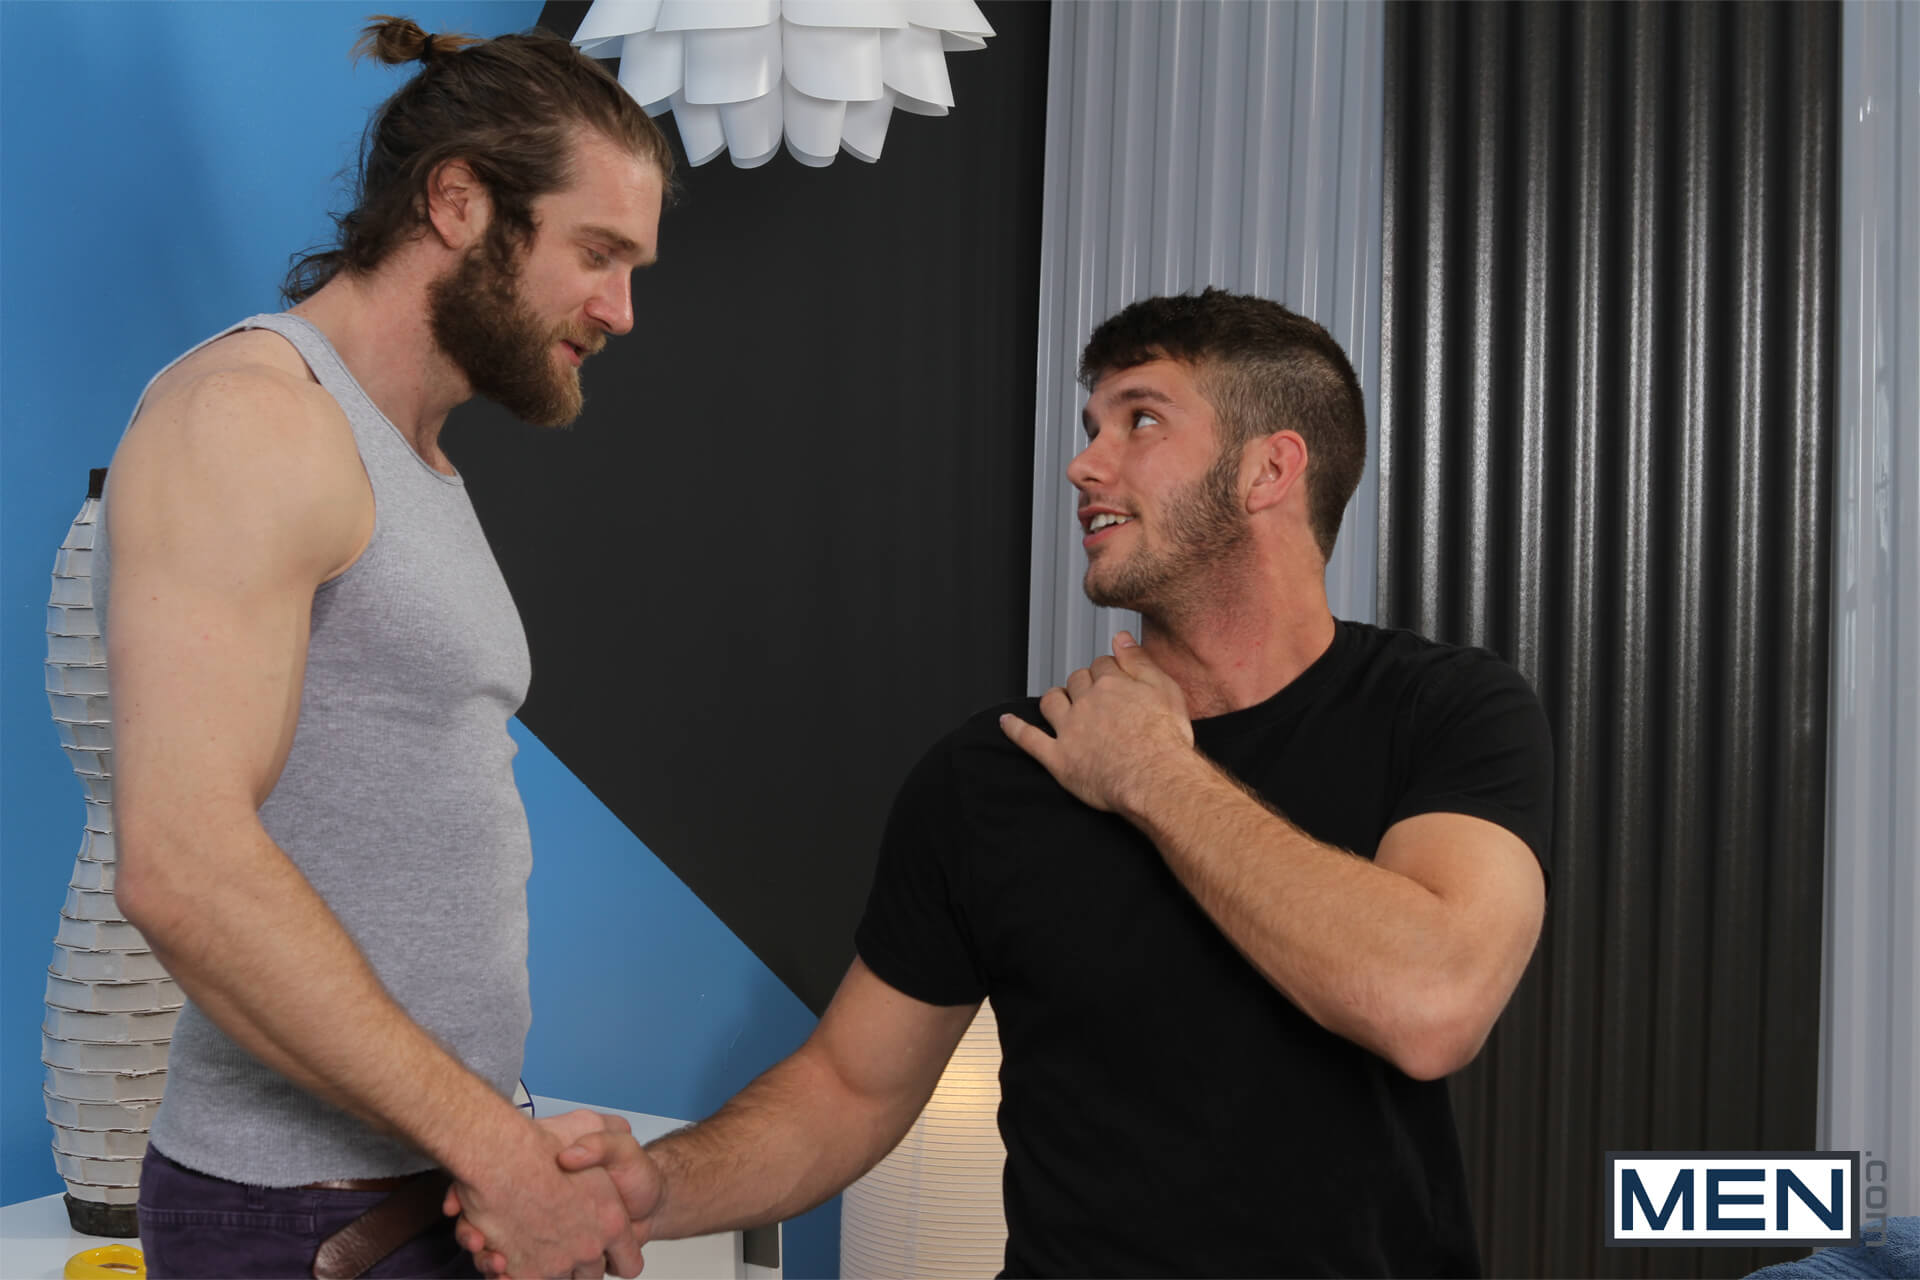 Colby Keller fuck Jimmy Fanz gay hot daddy dude men porn Deep Release